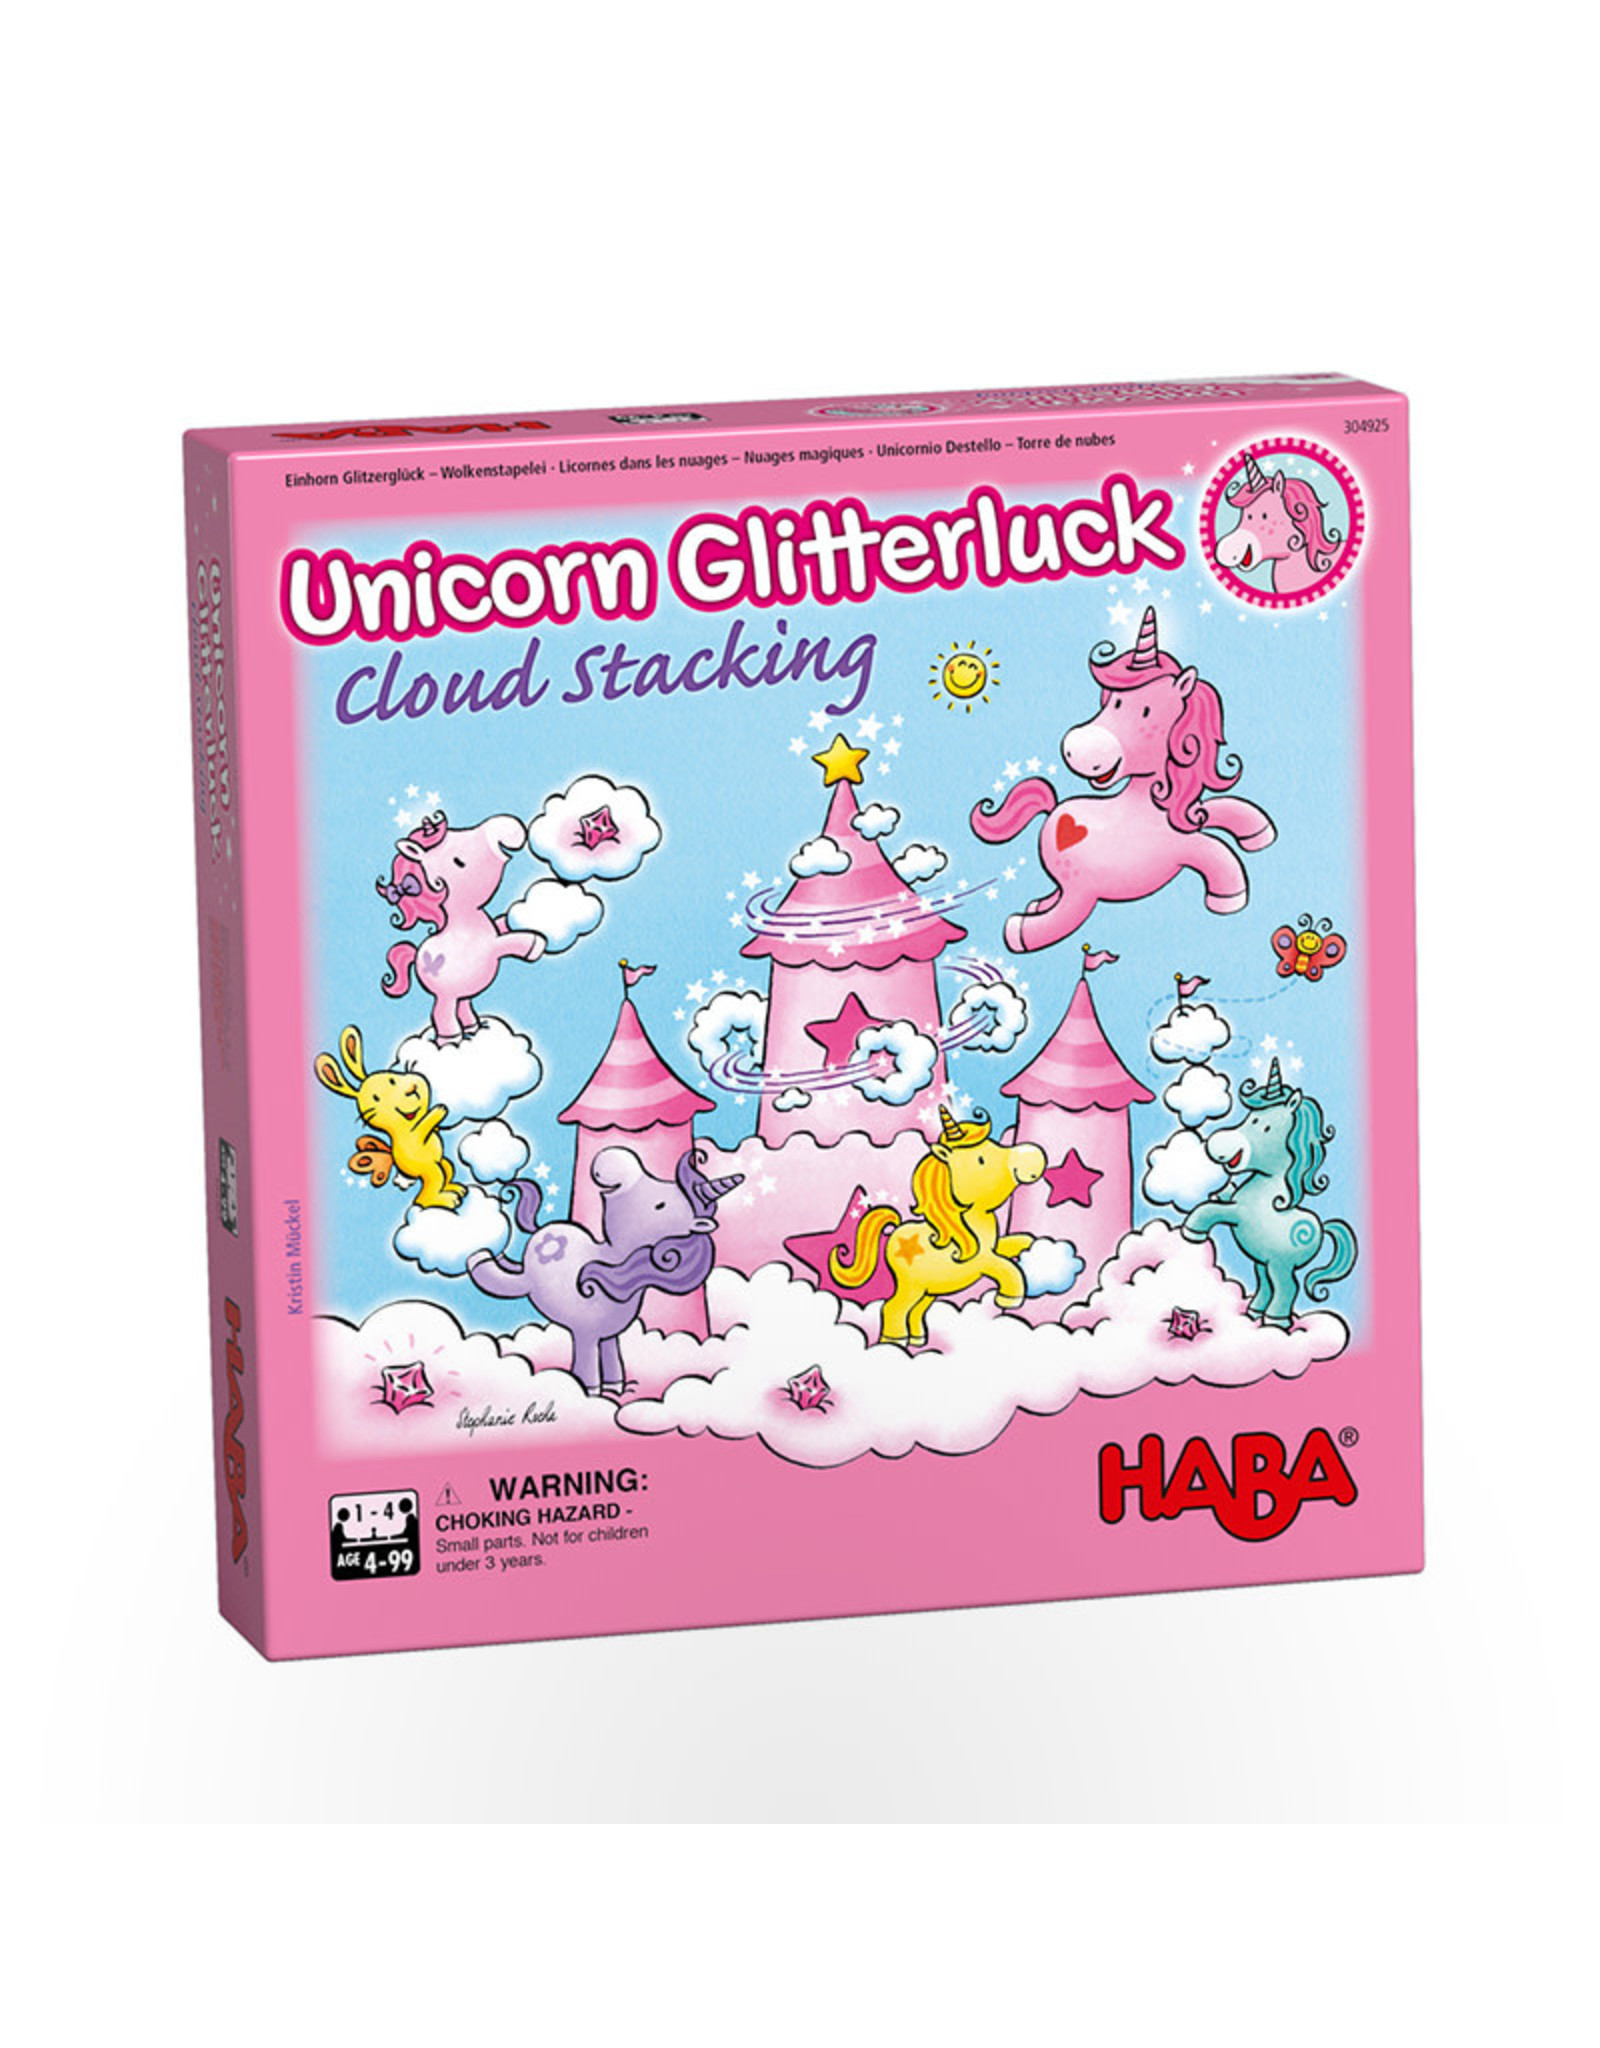 Haba Unicorn Glitterluck - Cloud Stacking